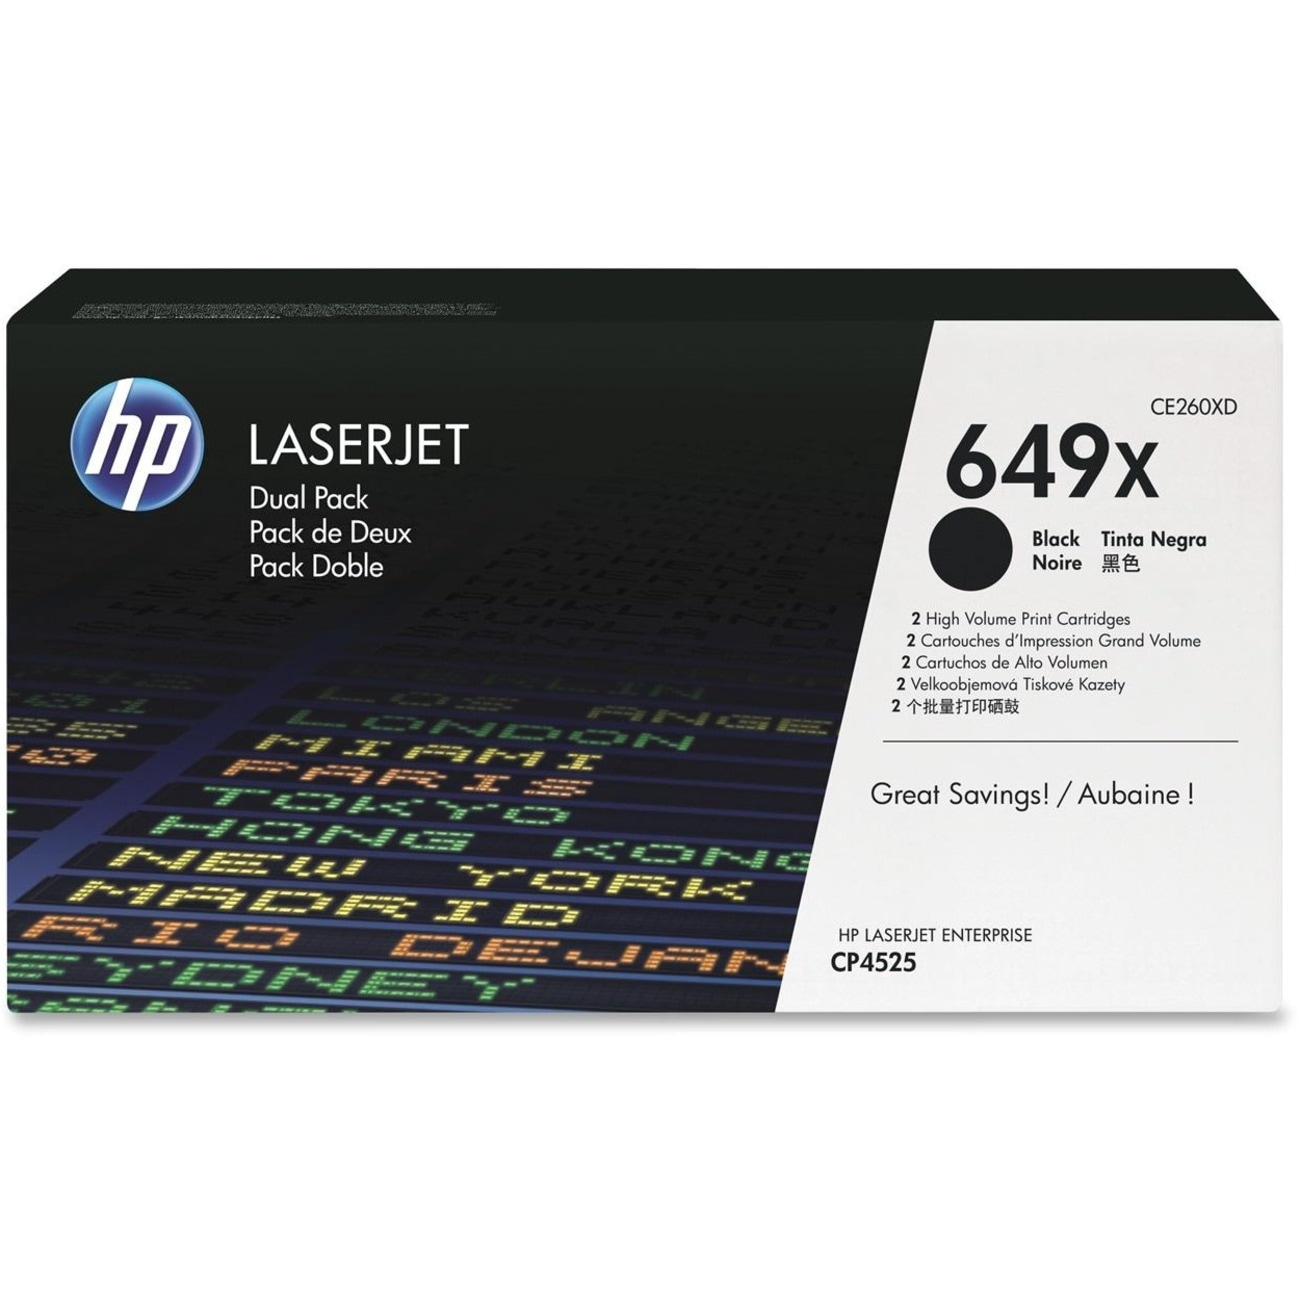 HP 649X Toner Cartridge - Black